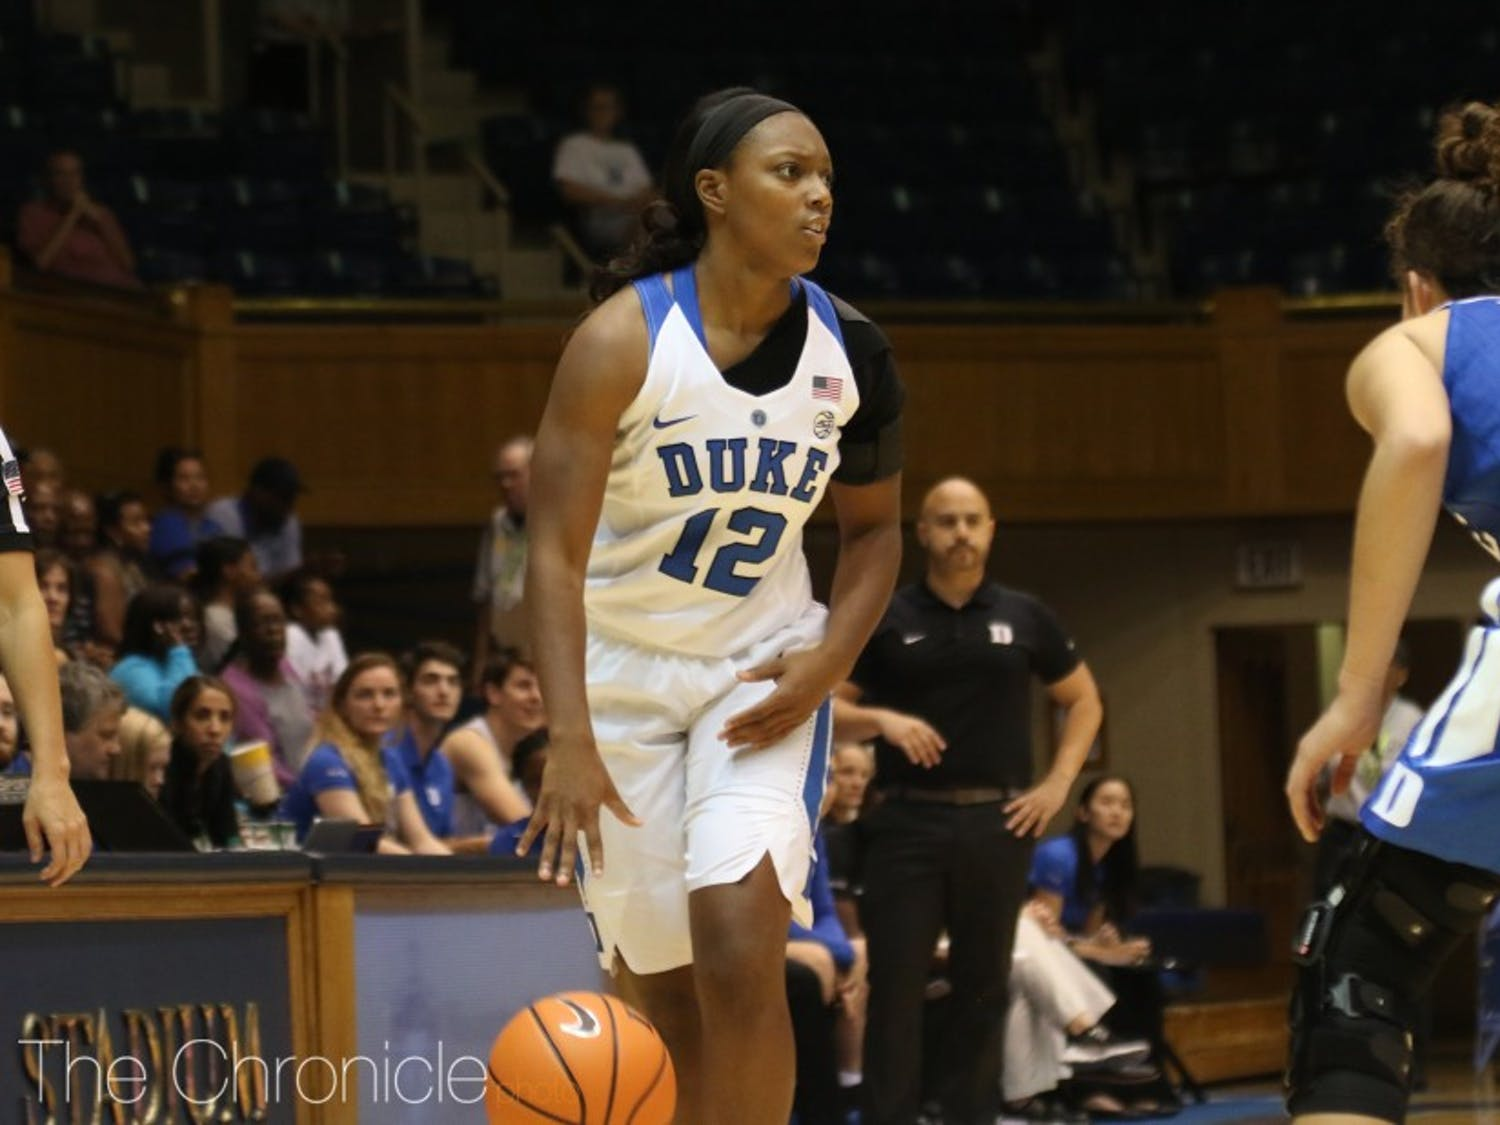 Mikayla Boykin will debut against Marist after sitting out the first games of the season due to lingering injury.